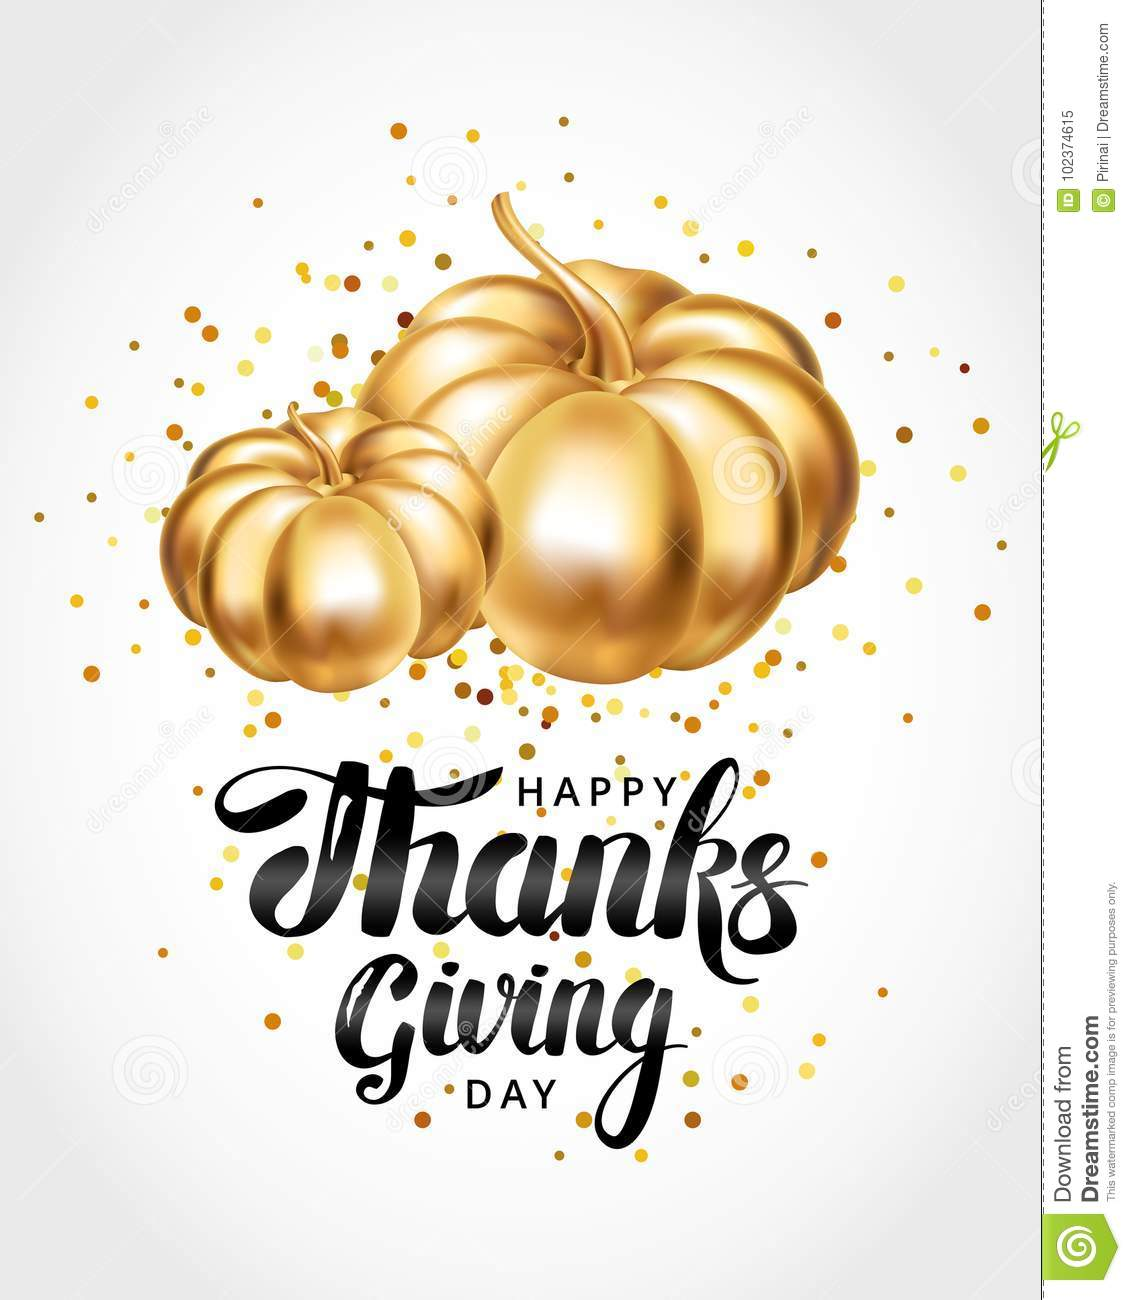 Happy Thanksgiving Day Greeting Card Stock Image Image Of Gold